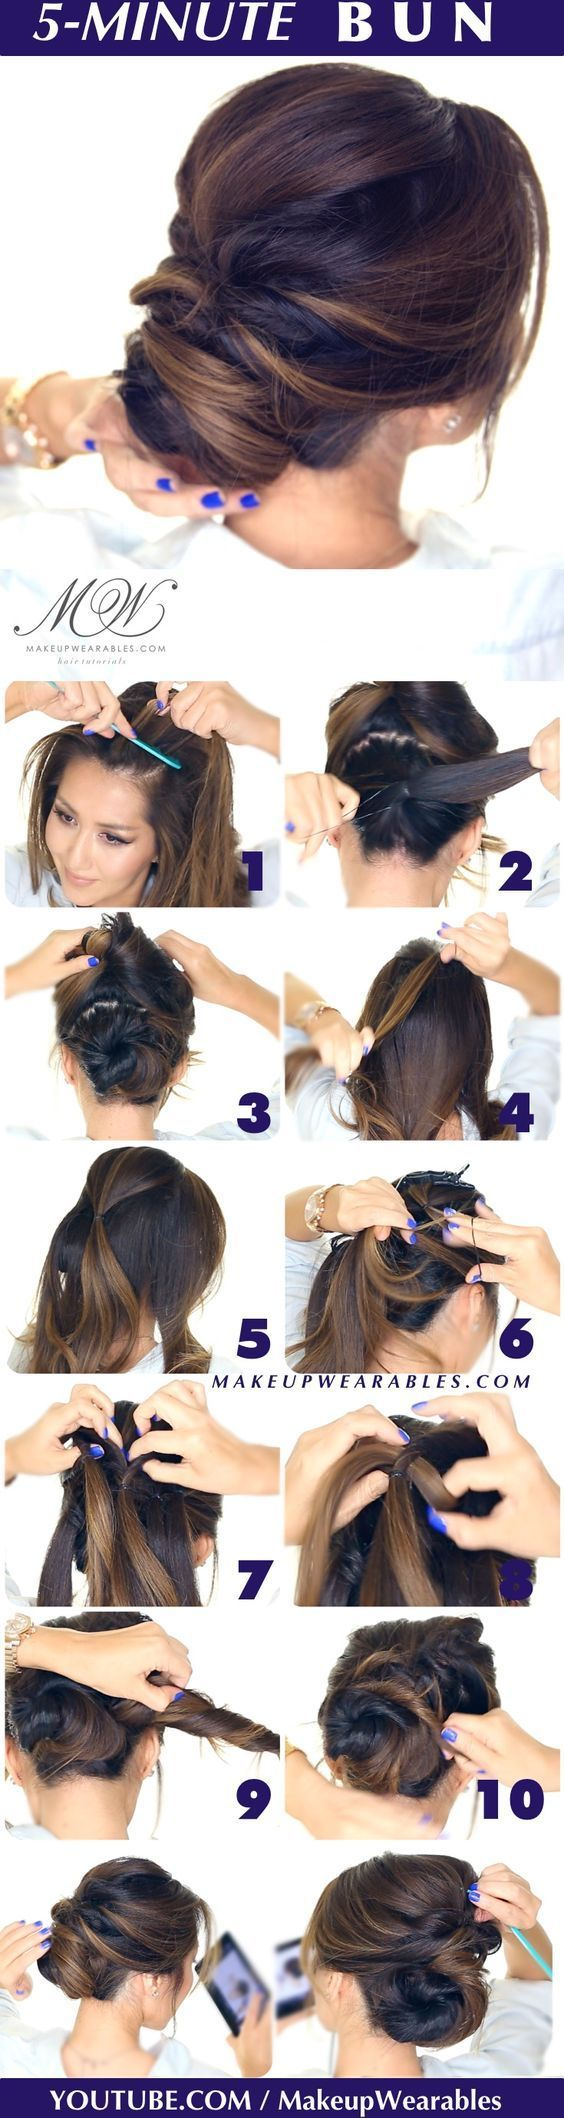 hair tutorial - easy romantic bun hairstyle - Elegant twisted bun hairstyles for homecoming prom wedding: (chignon hair style)